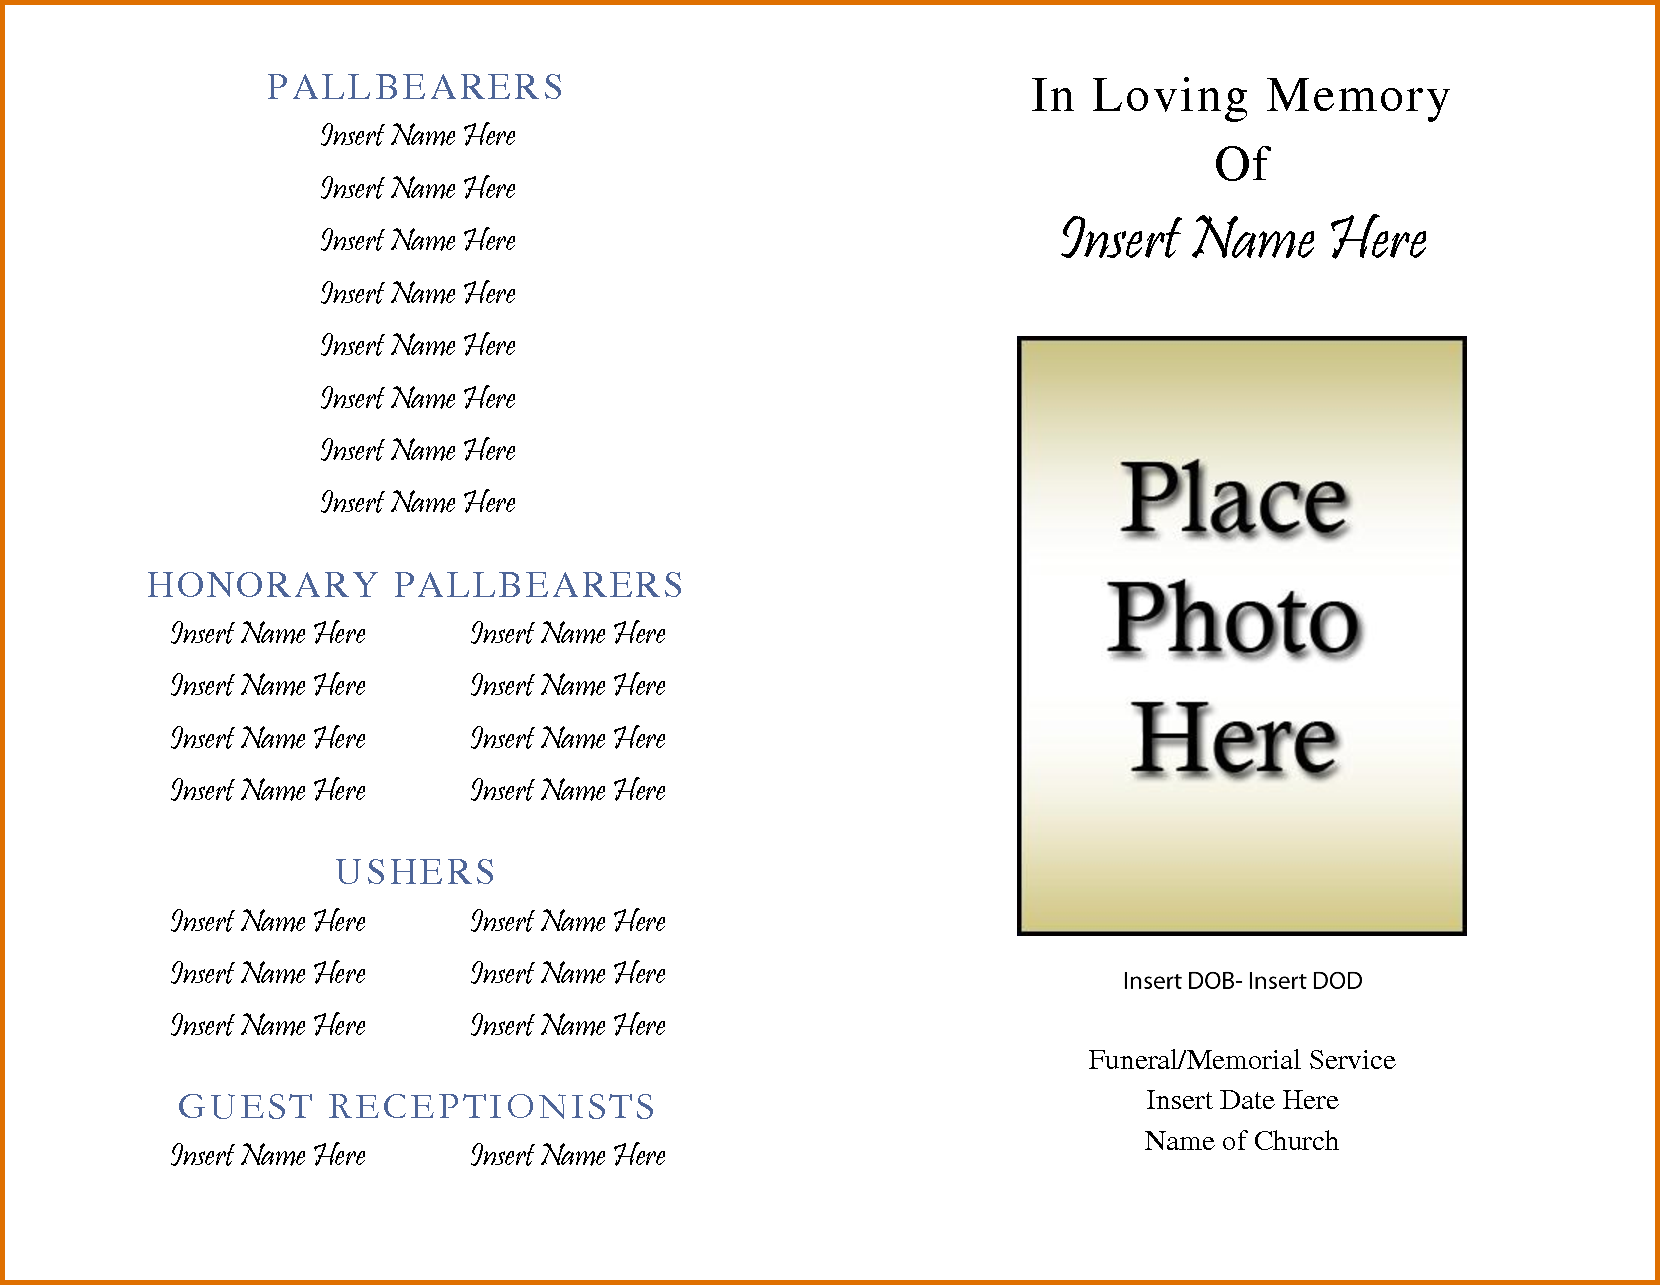 image relating to In Loving Memory Free Printable named Absolutely free Printable Obituary Template